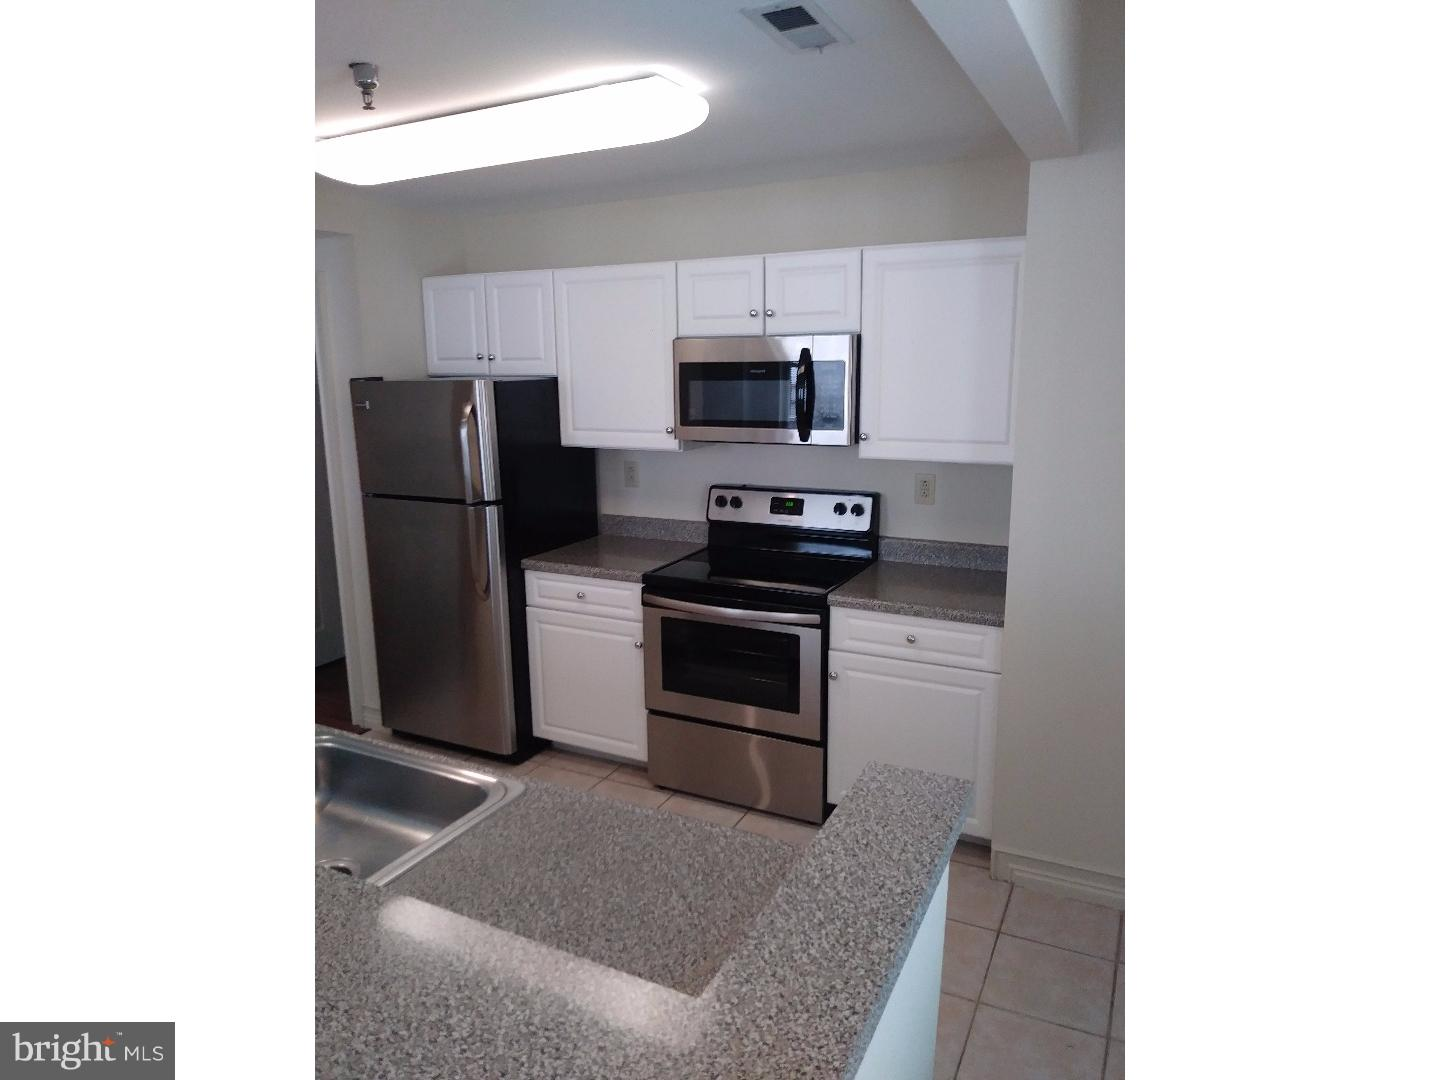 There is a must see 1 bedroom apartment with new kitchen & bathroom. This awesome residence is just steps off of Rittenhouse square! Well designed living and dining space, open kitchen with excellent storage. Enjoy living in this elevator, doorman building! Brand new gym! Pictures are of model unit.